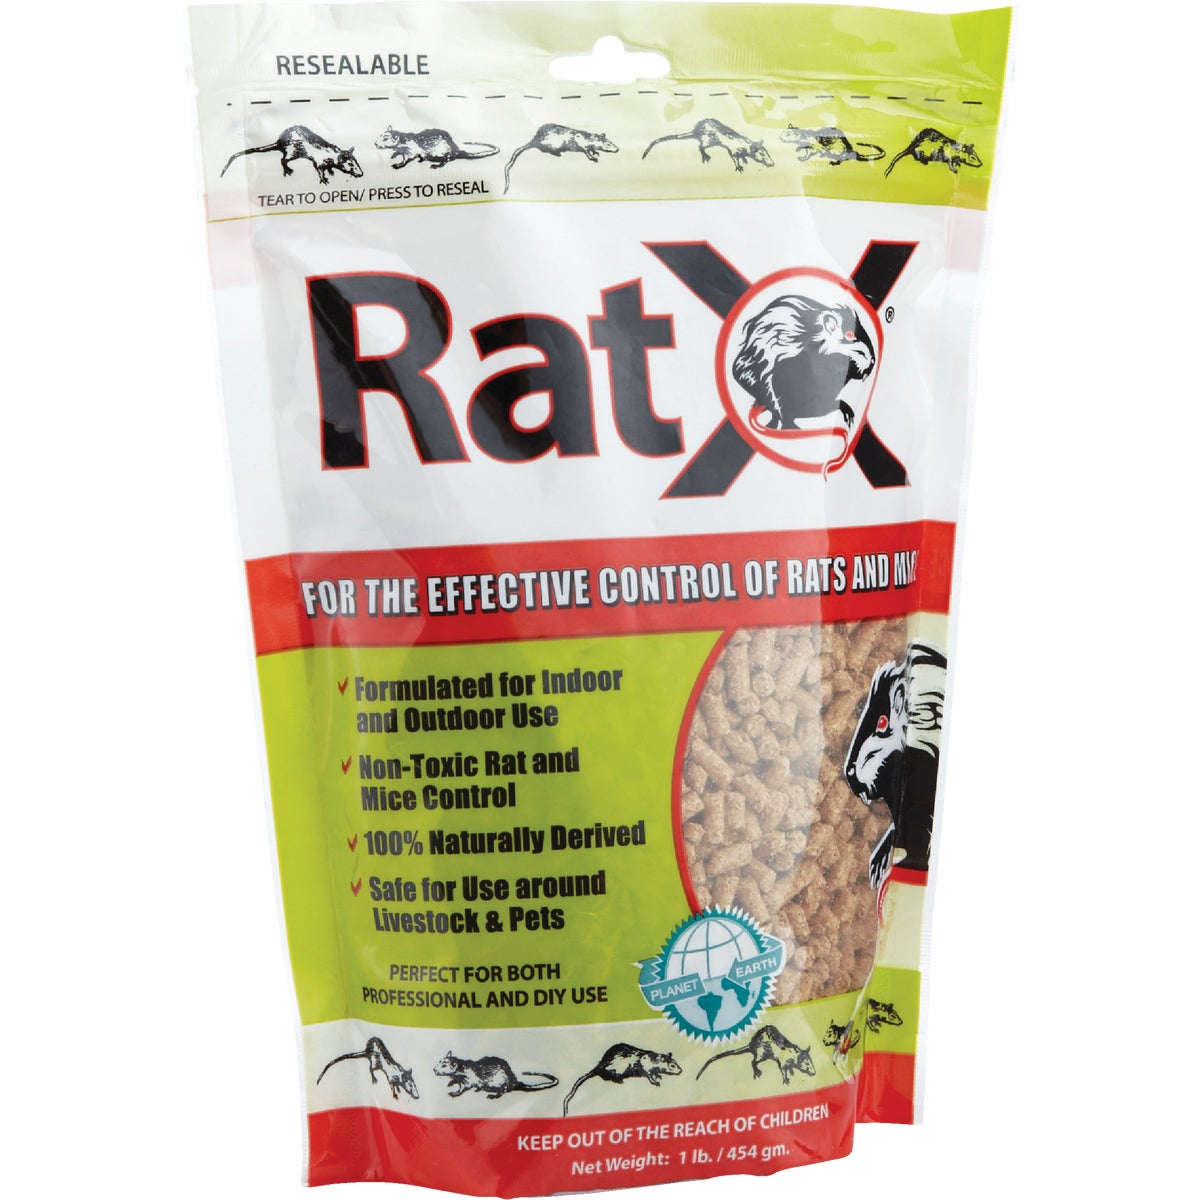 Item 703999, RatX is an all-natural rodenticide that controls rats and mice. Consumed as a food source as part of natural eating habits. Formulated for indoor and outdoor use.